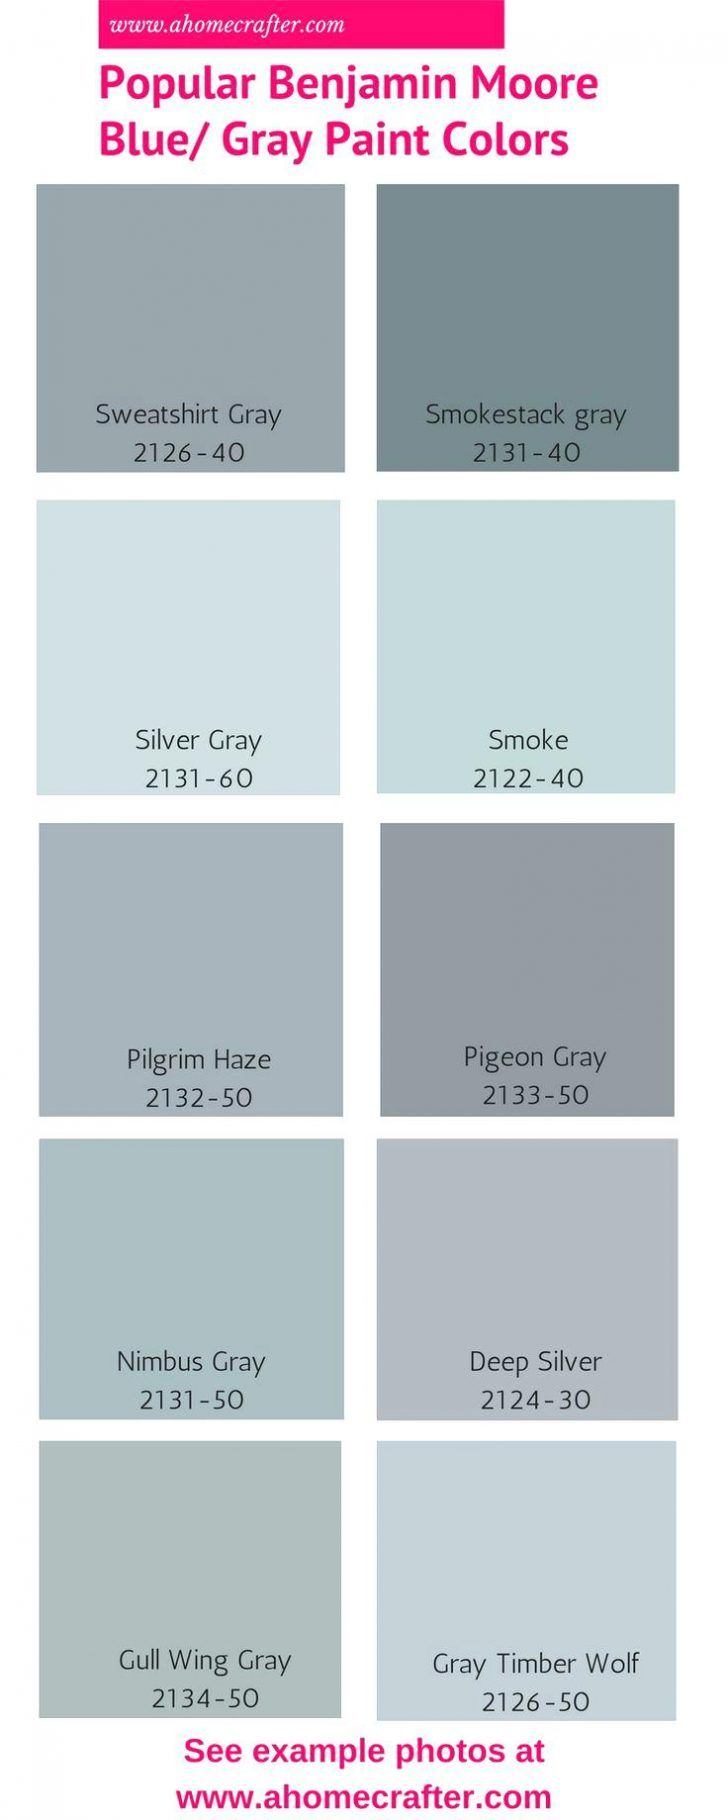 teal tufted chair office chairs under 50 dollars best 25+ valspar gray ideas on pinterest | paint colours, and accent ...